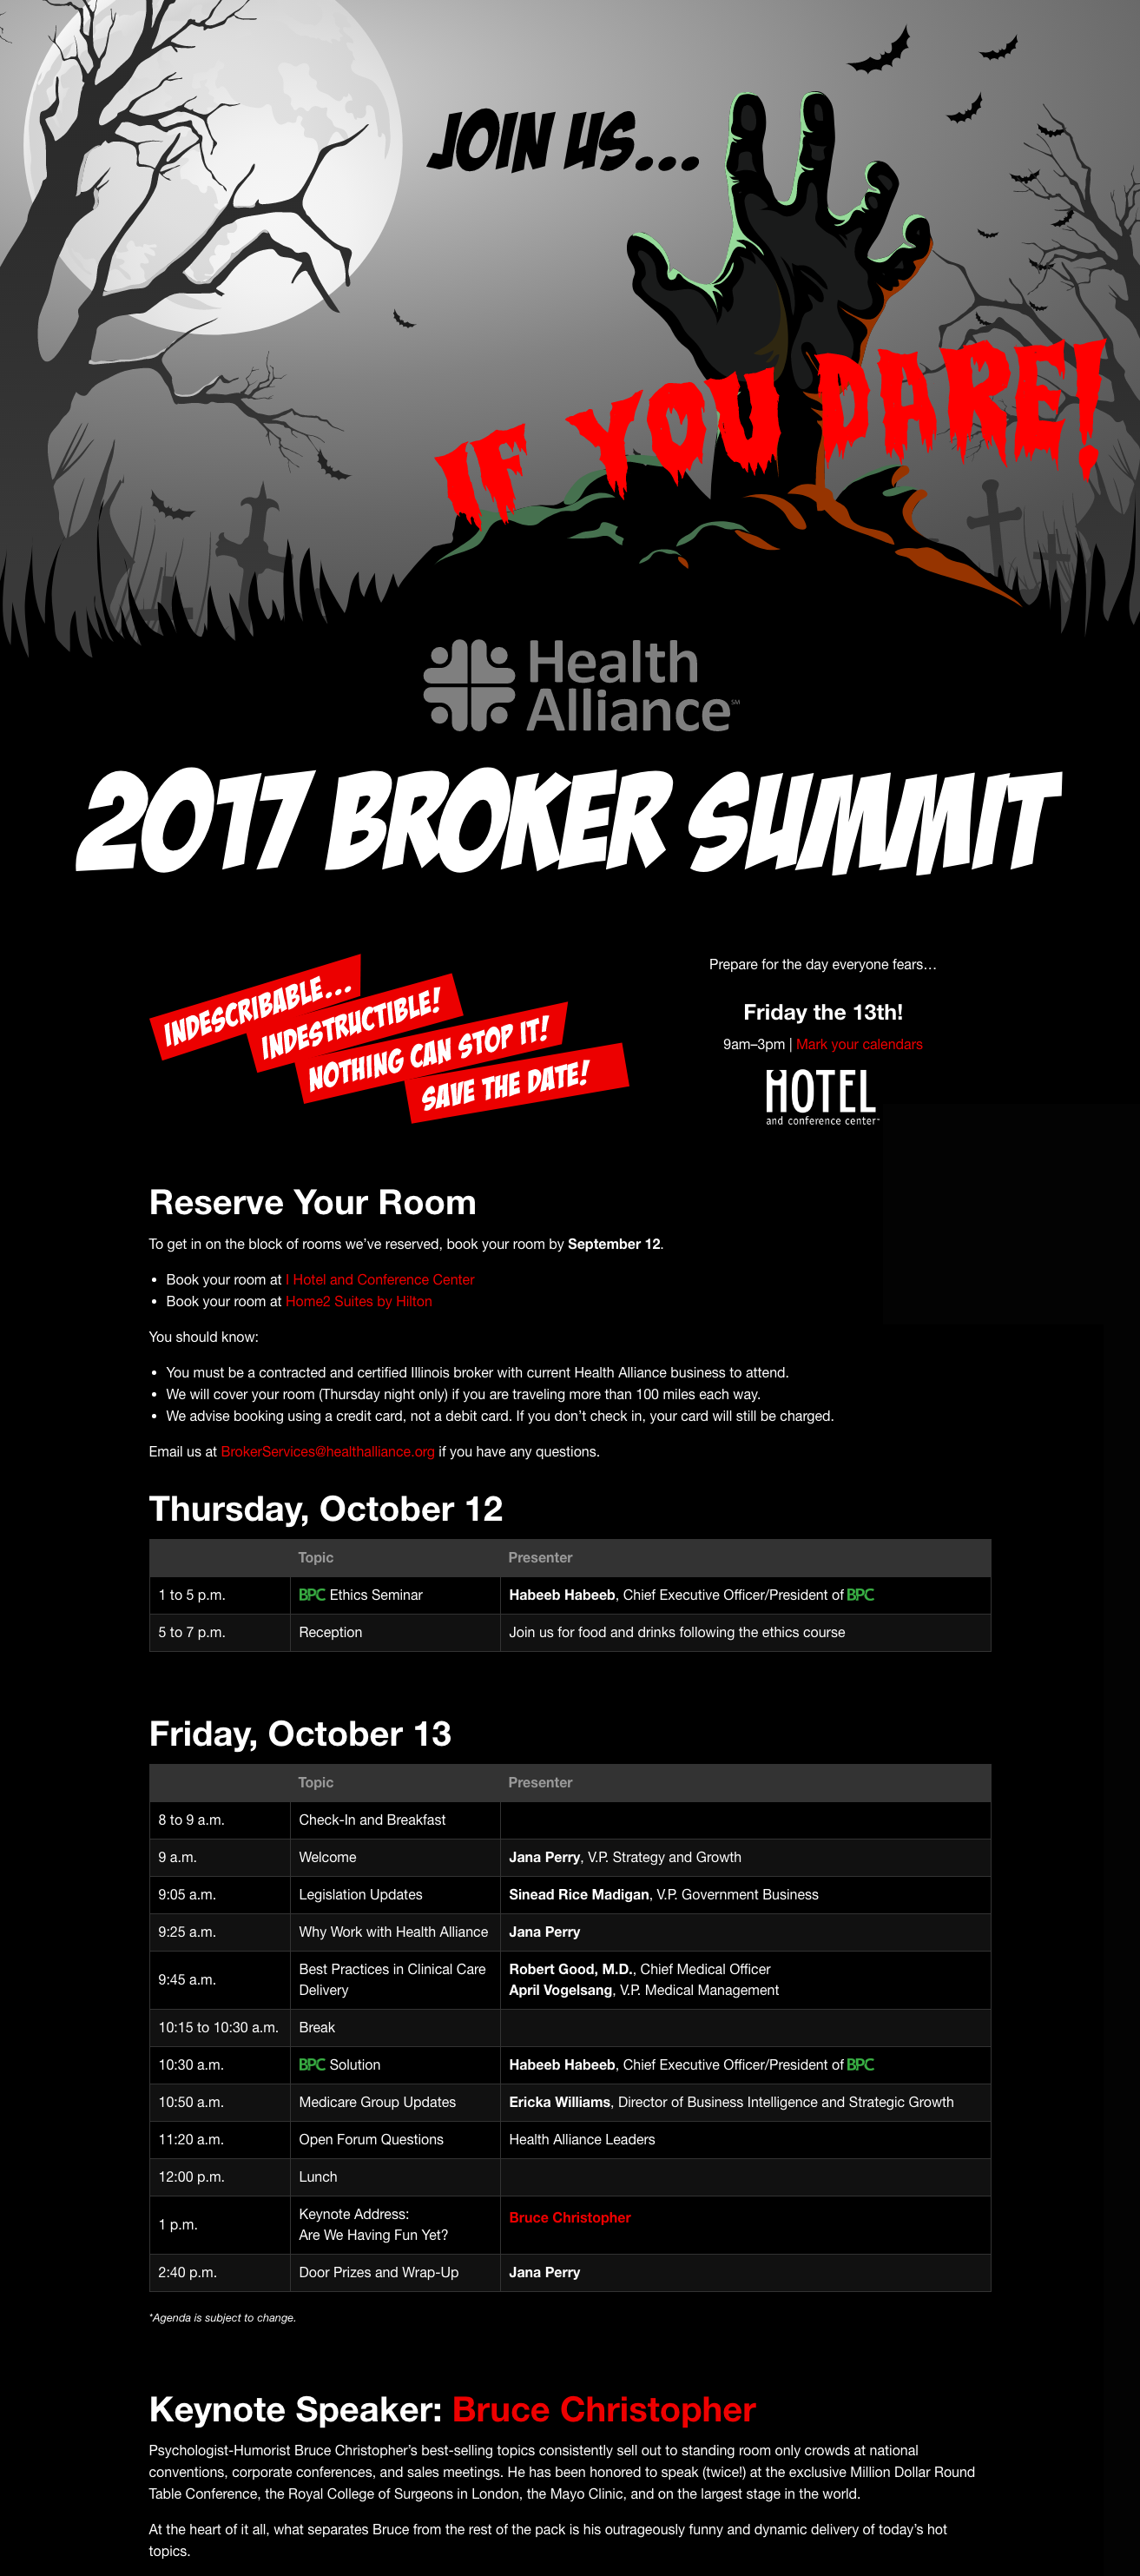 Broker summit landing page